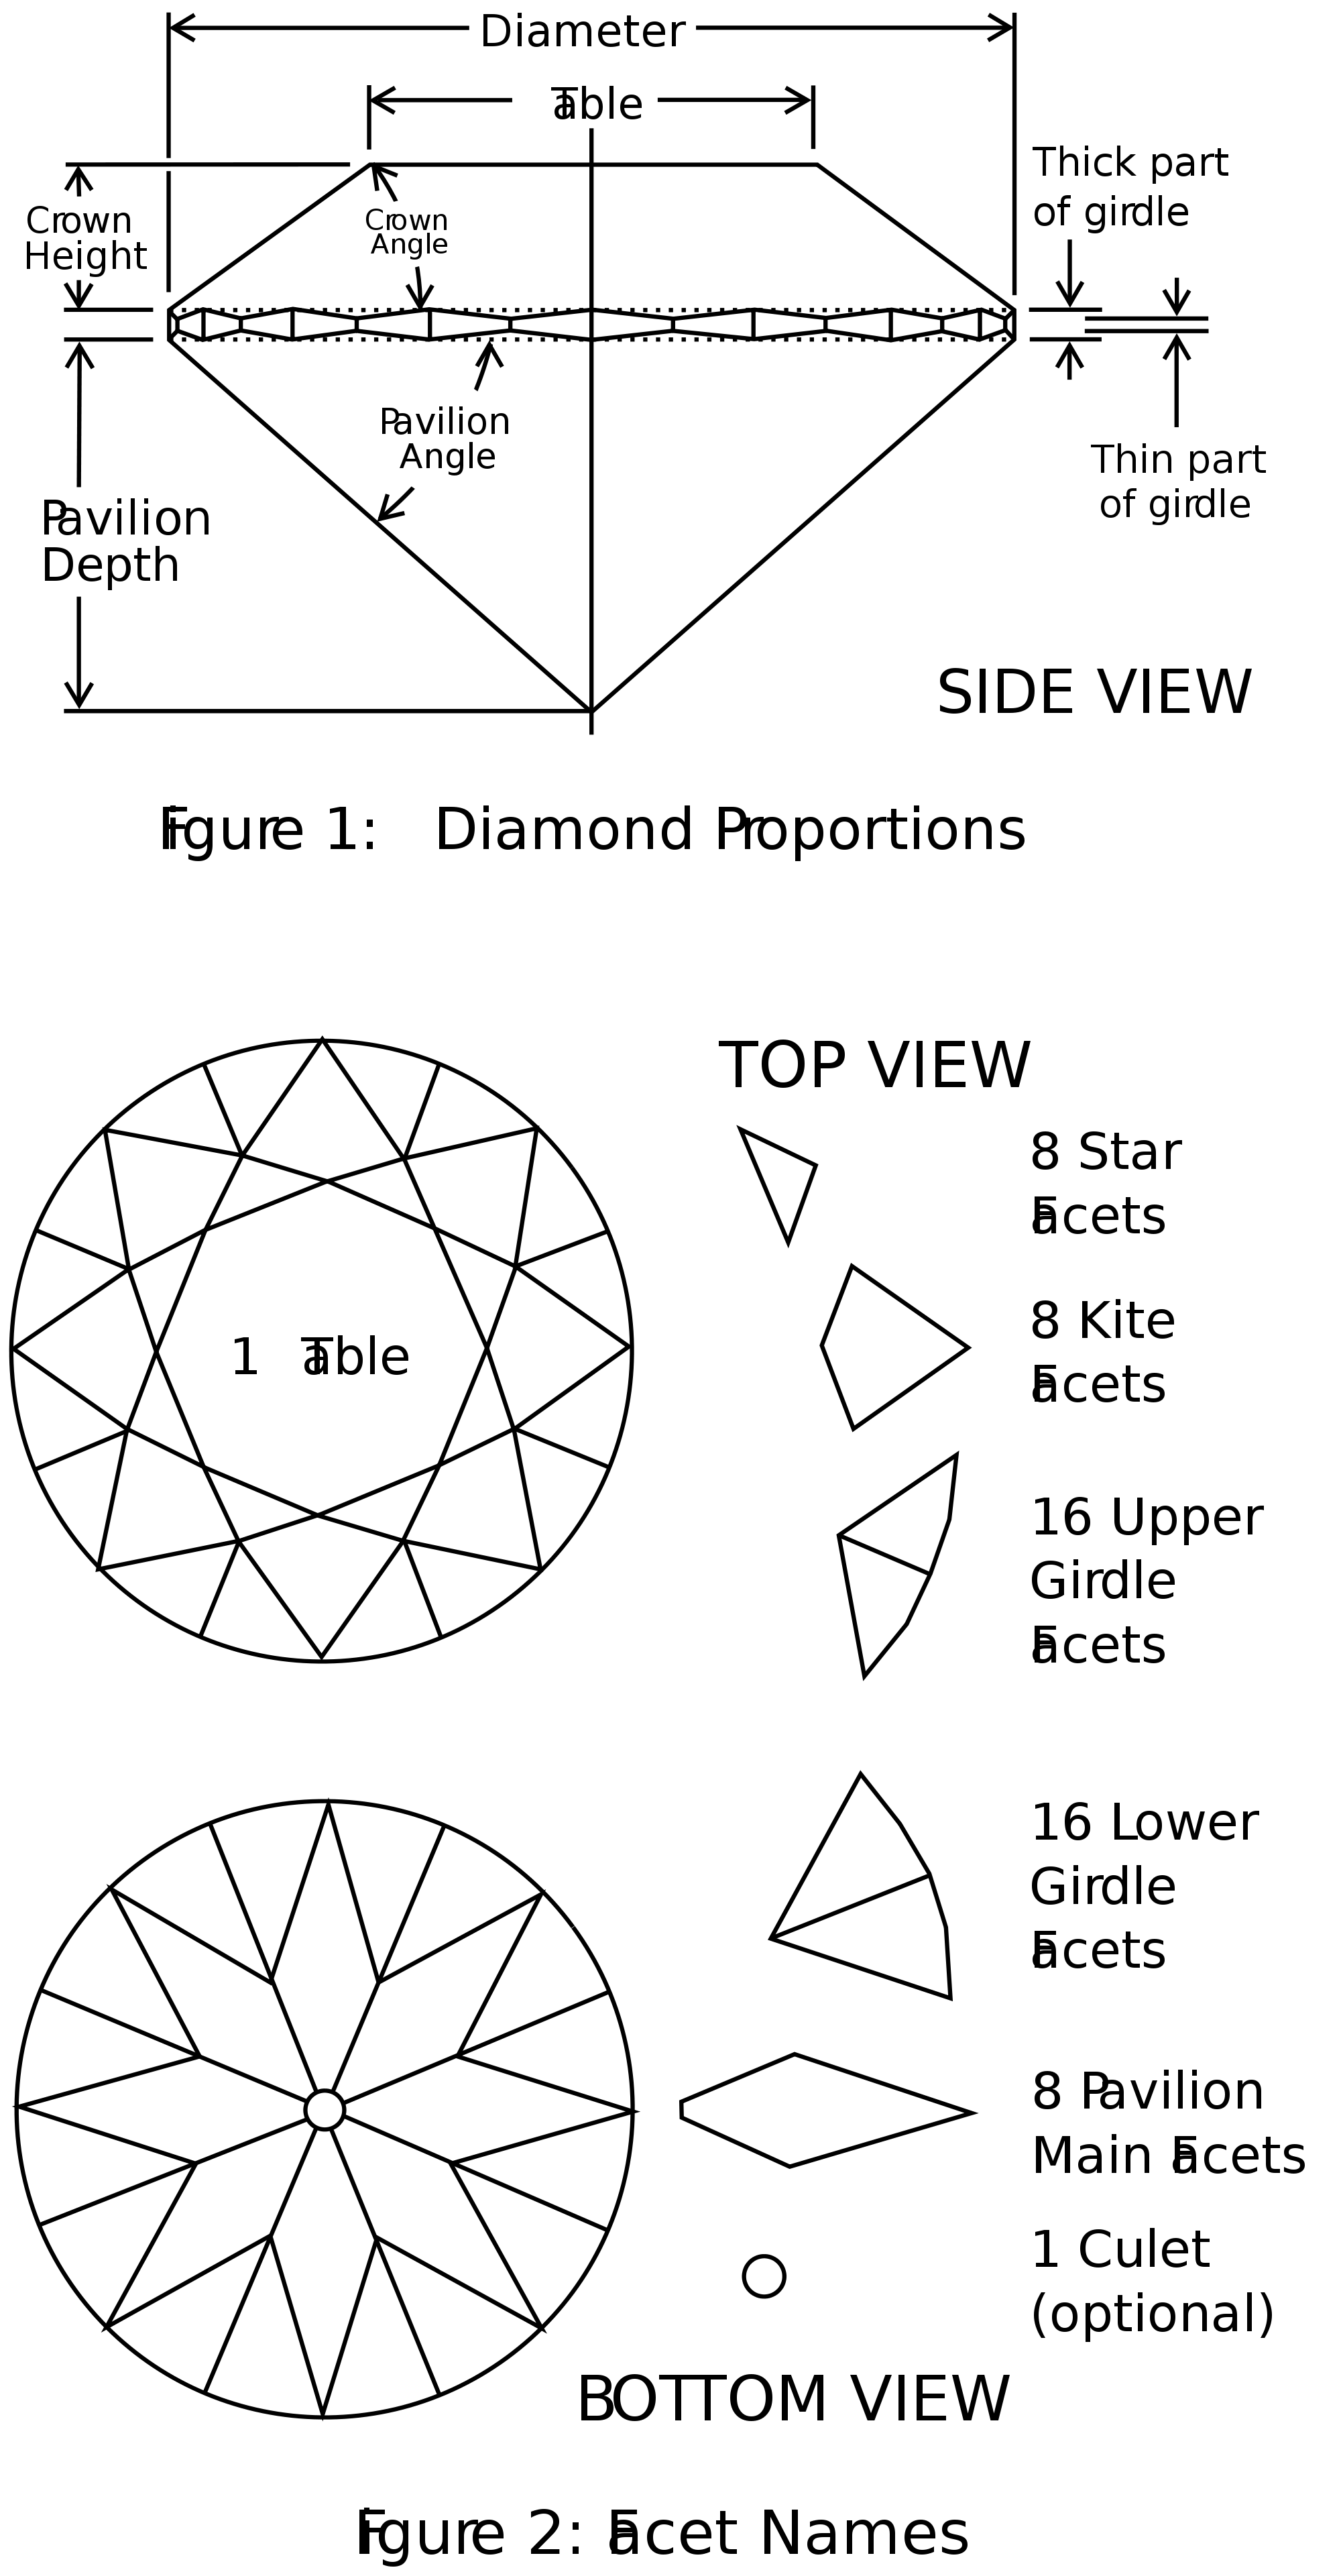 Fig. 1 and 2, Diamond Proportions and Facet Names, for the